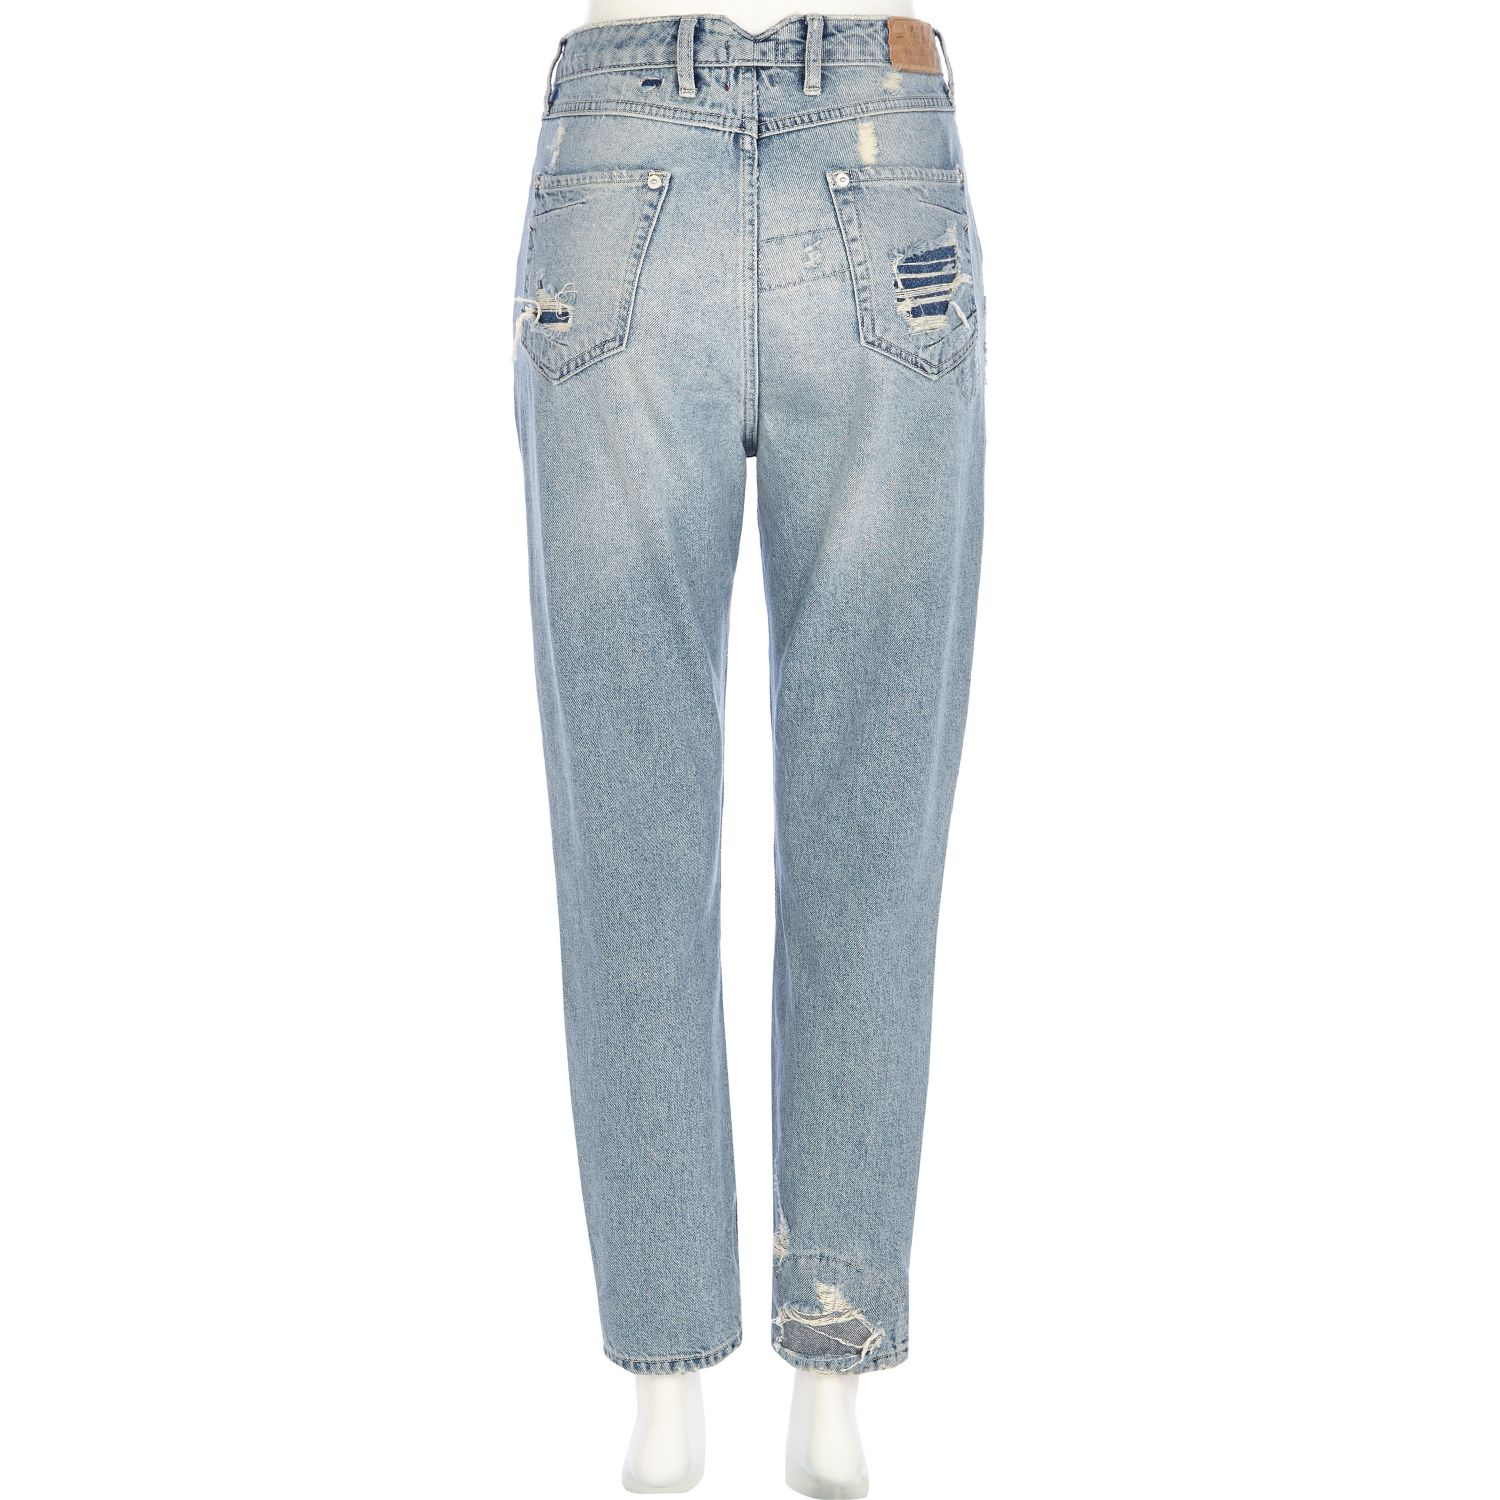 blue river single men Find the latest women's, men's and kids' clothing trends at river island shop online at your favorite high street store free delivery options available.